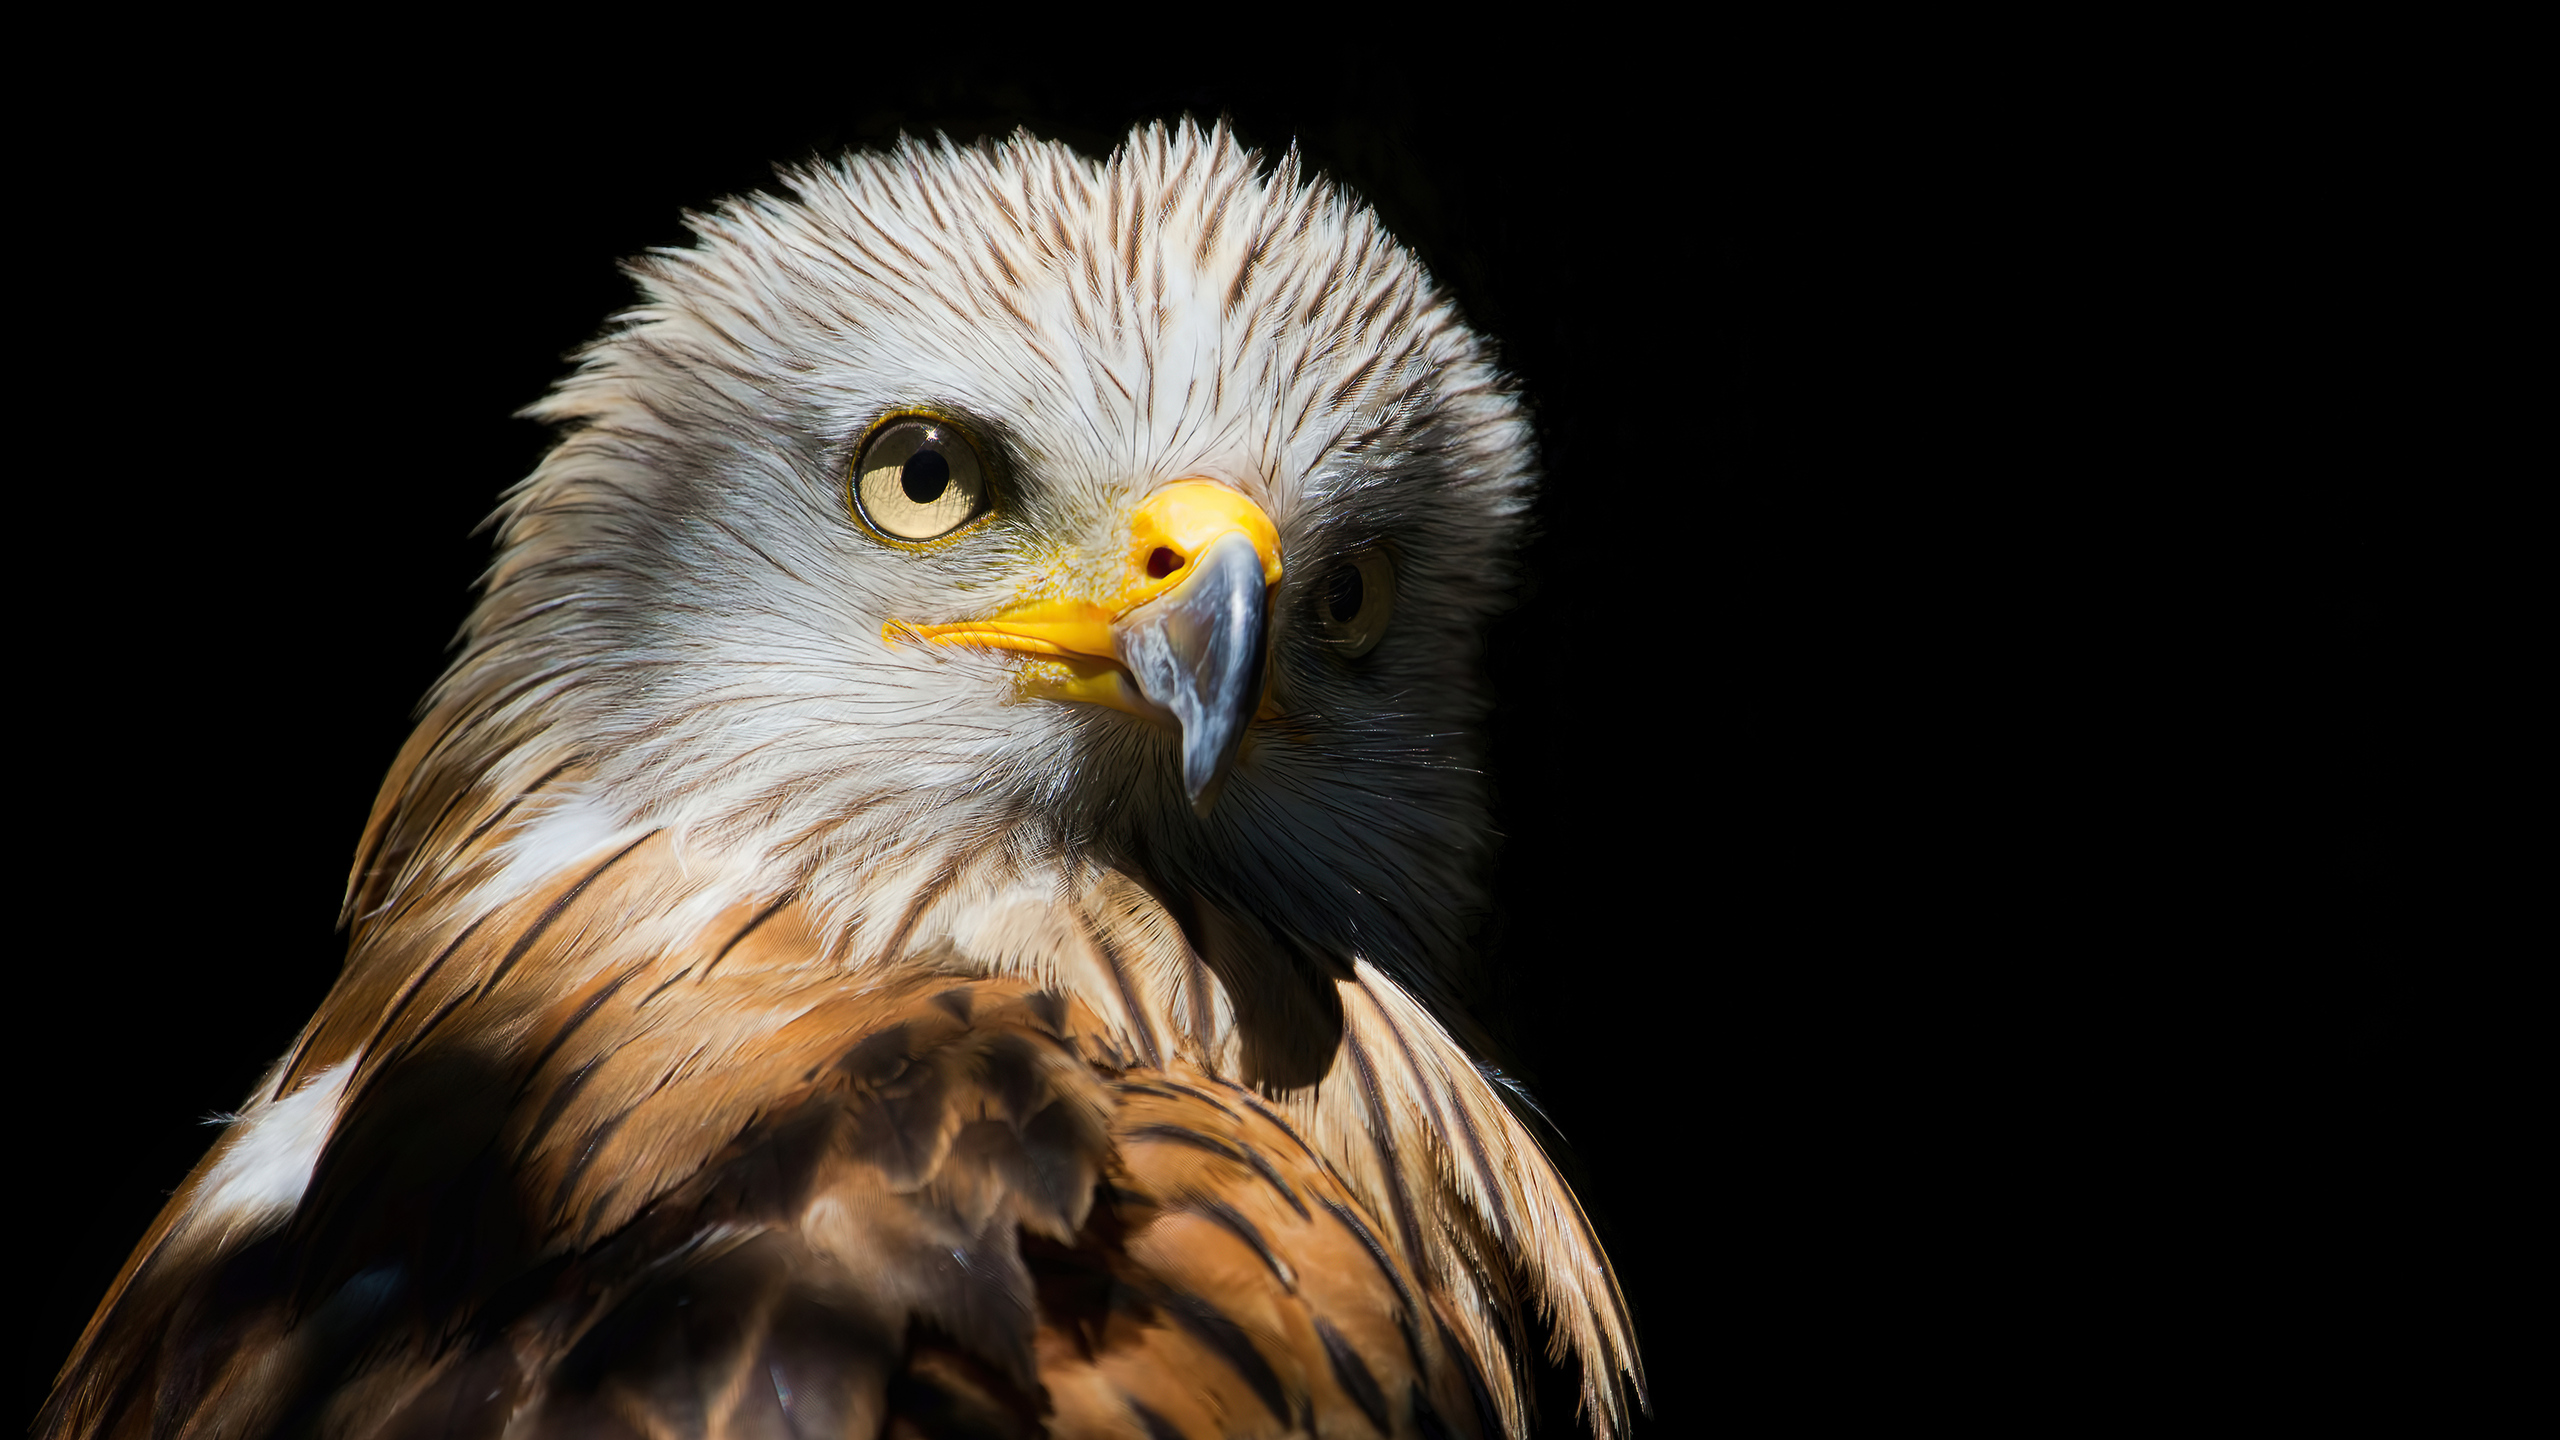 2560x1440 Eagle Red Kite Black Beak 4k 1440p Resolution Hd 4k Wallpapers Images Backgrounds Photos And Pictures